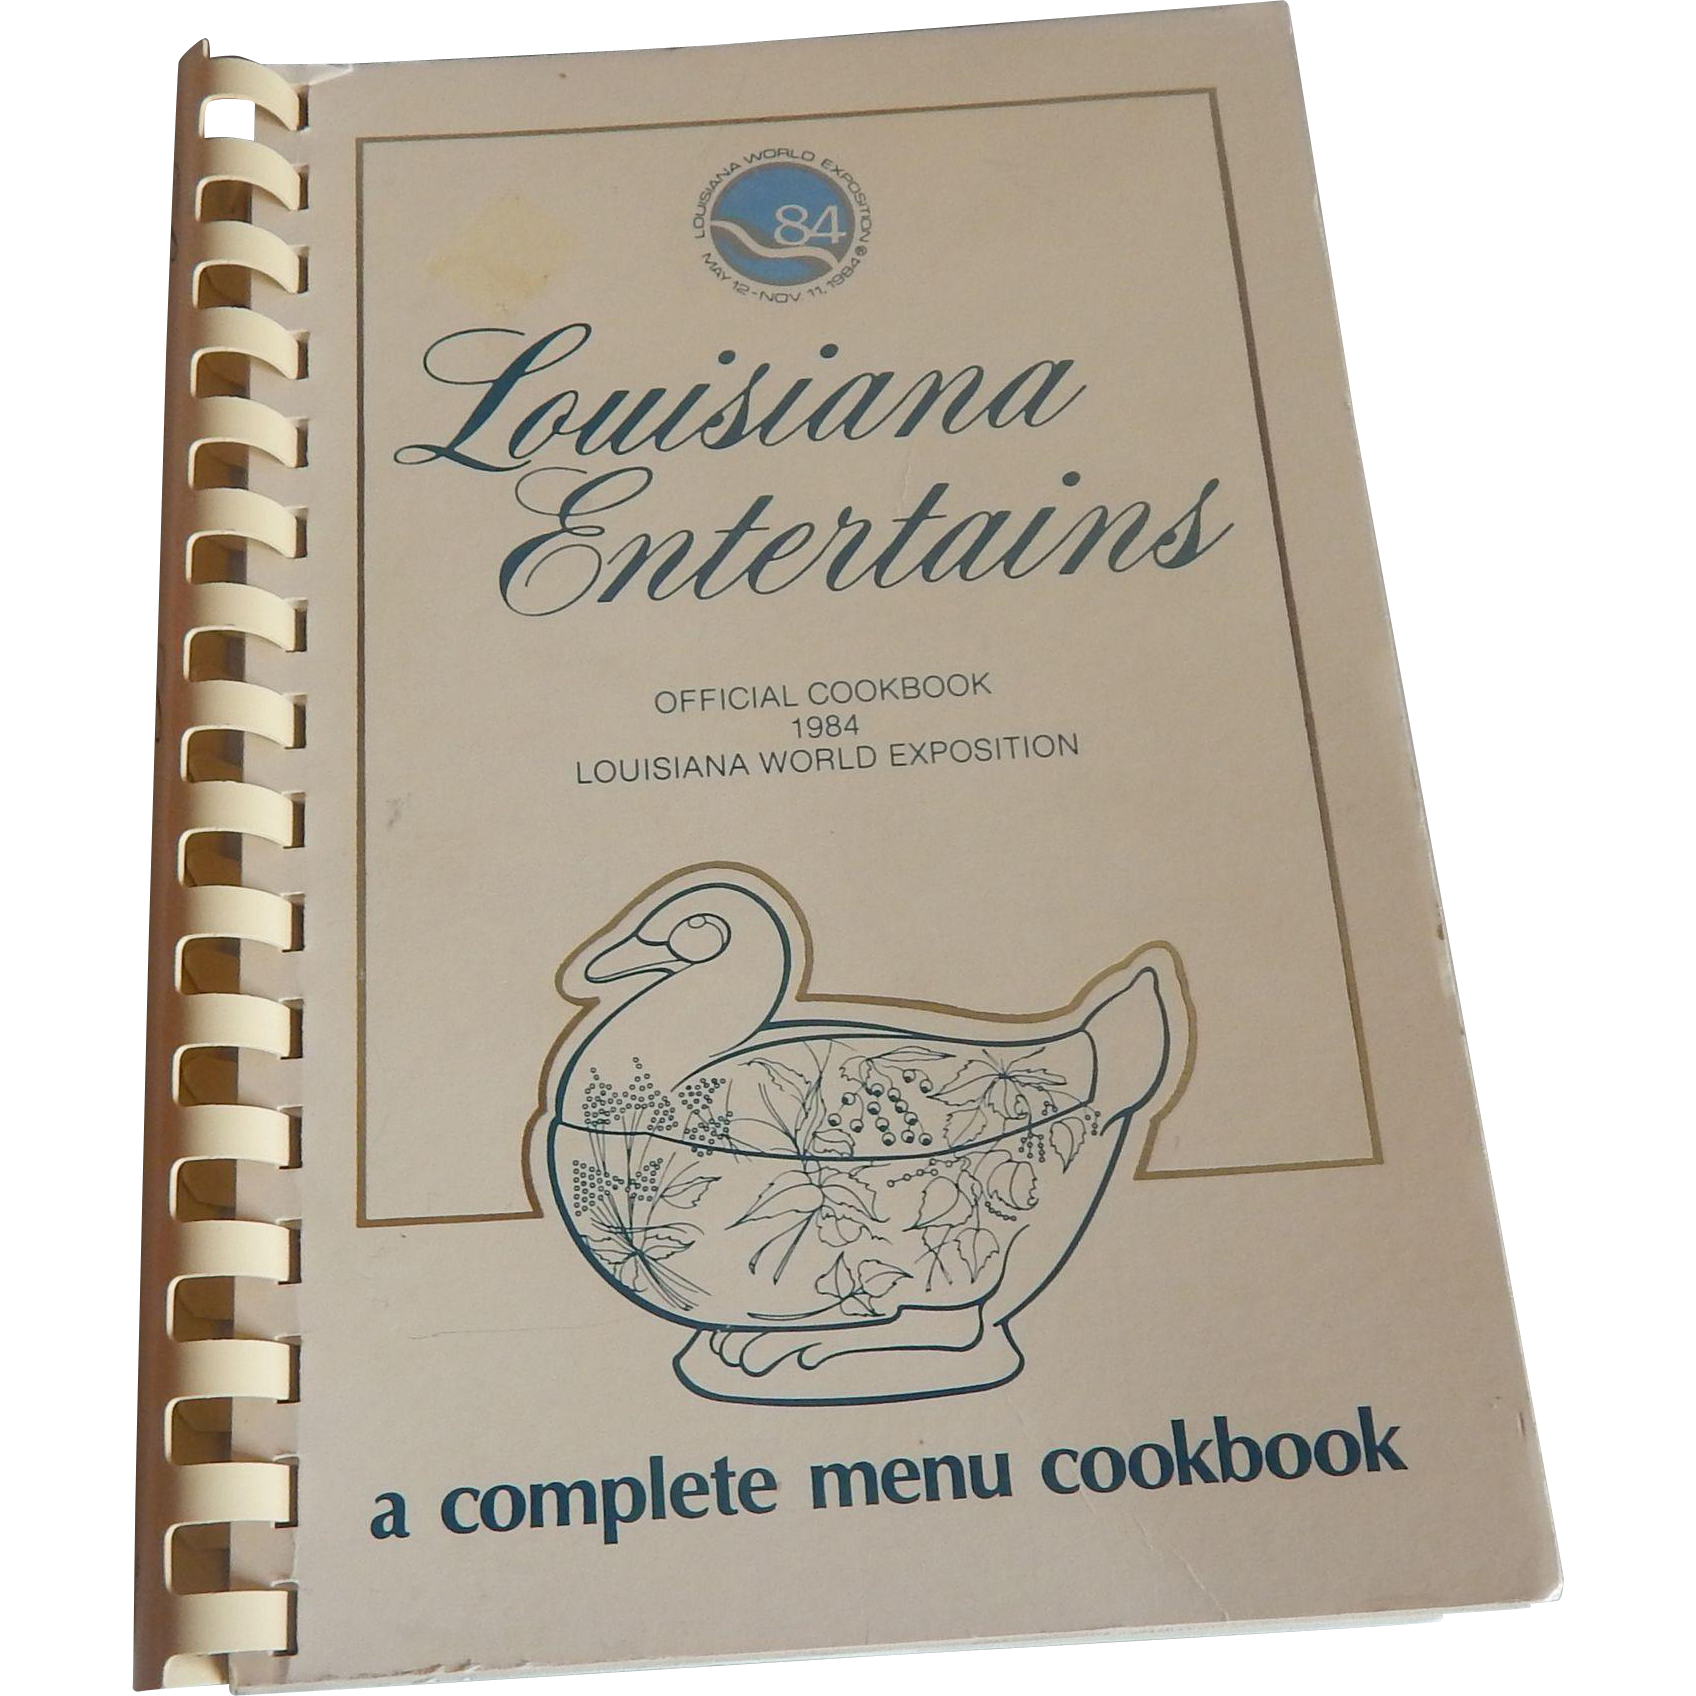 Louisiana Entertains Cookbook 1984 World Exposition